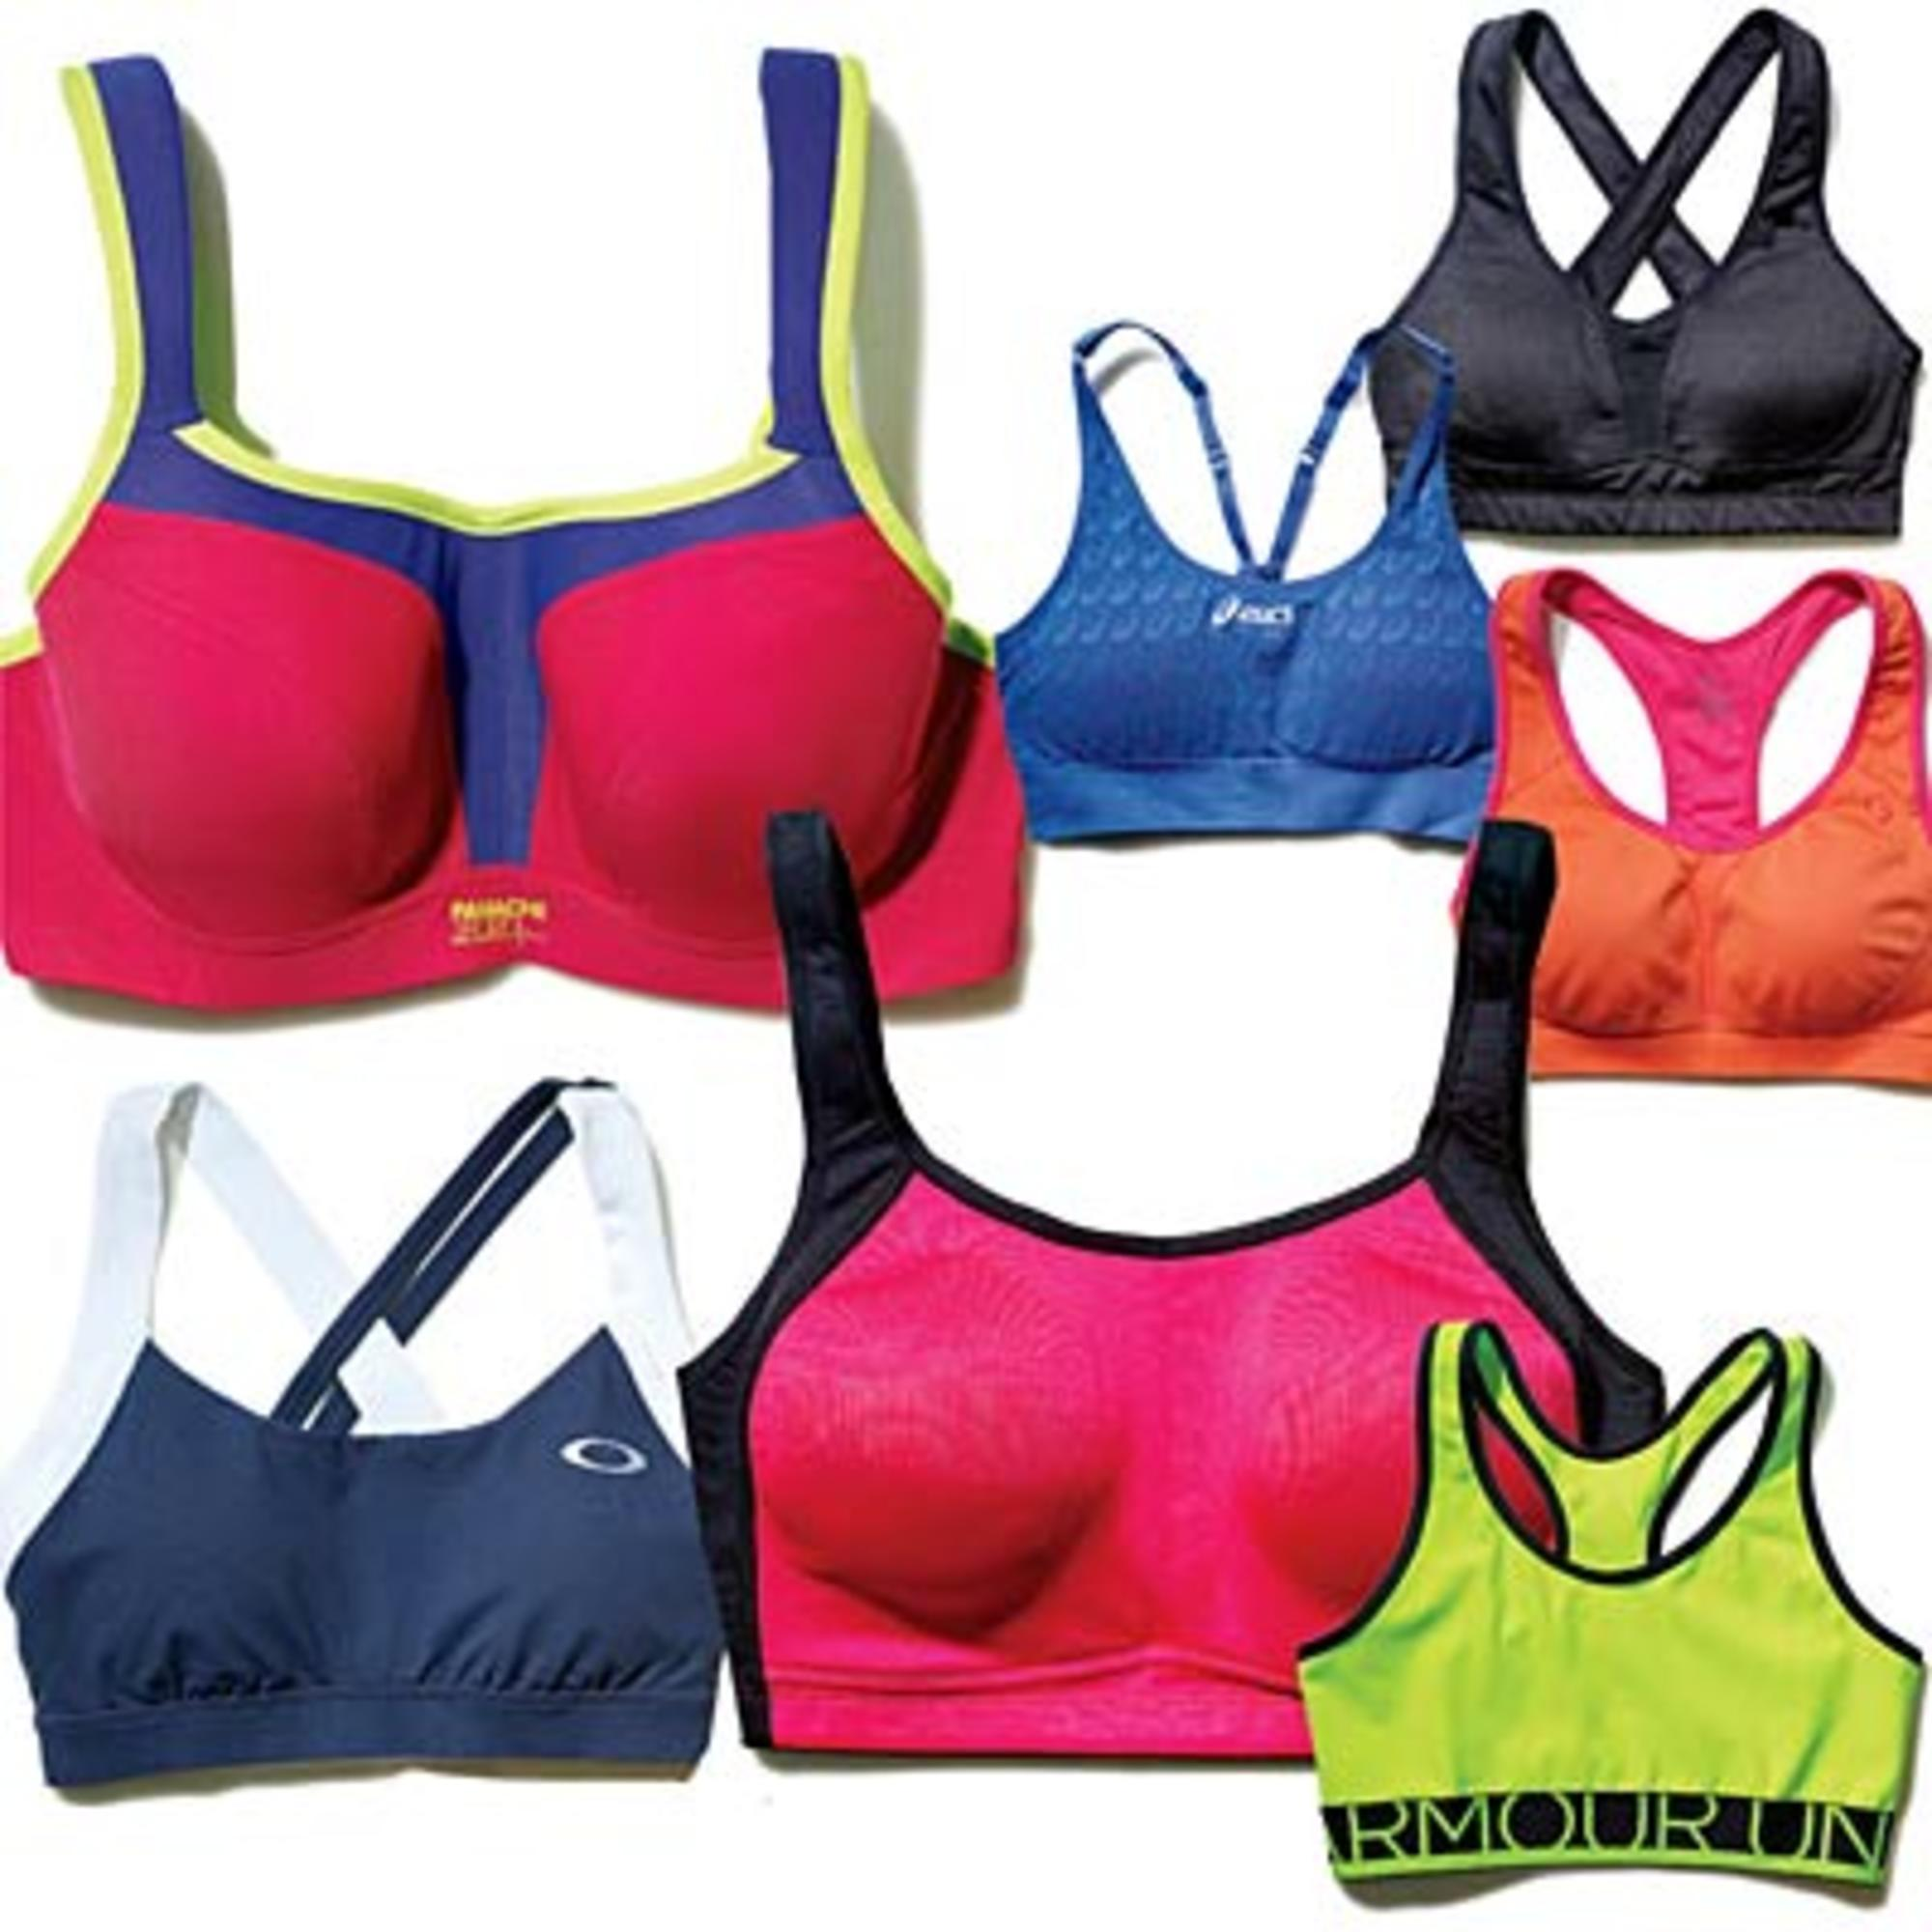 The Best Sports Bras for Big Breasts - Breast Cancer - Health.com